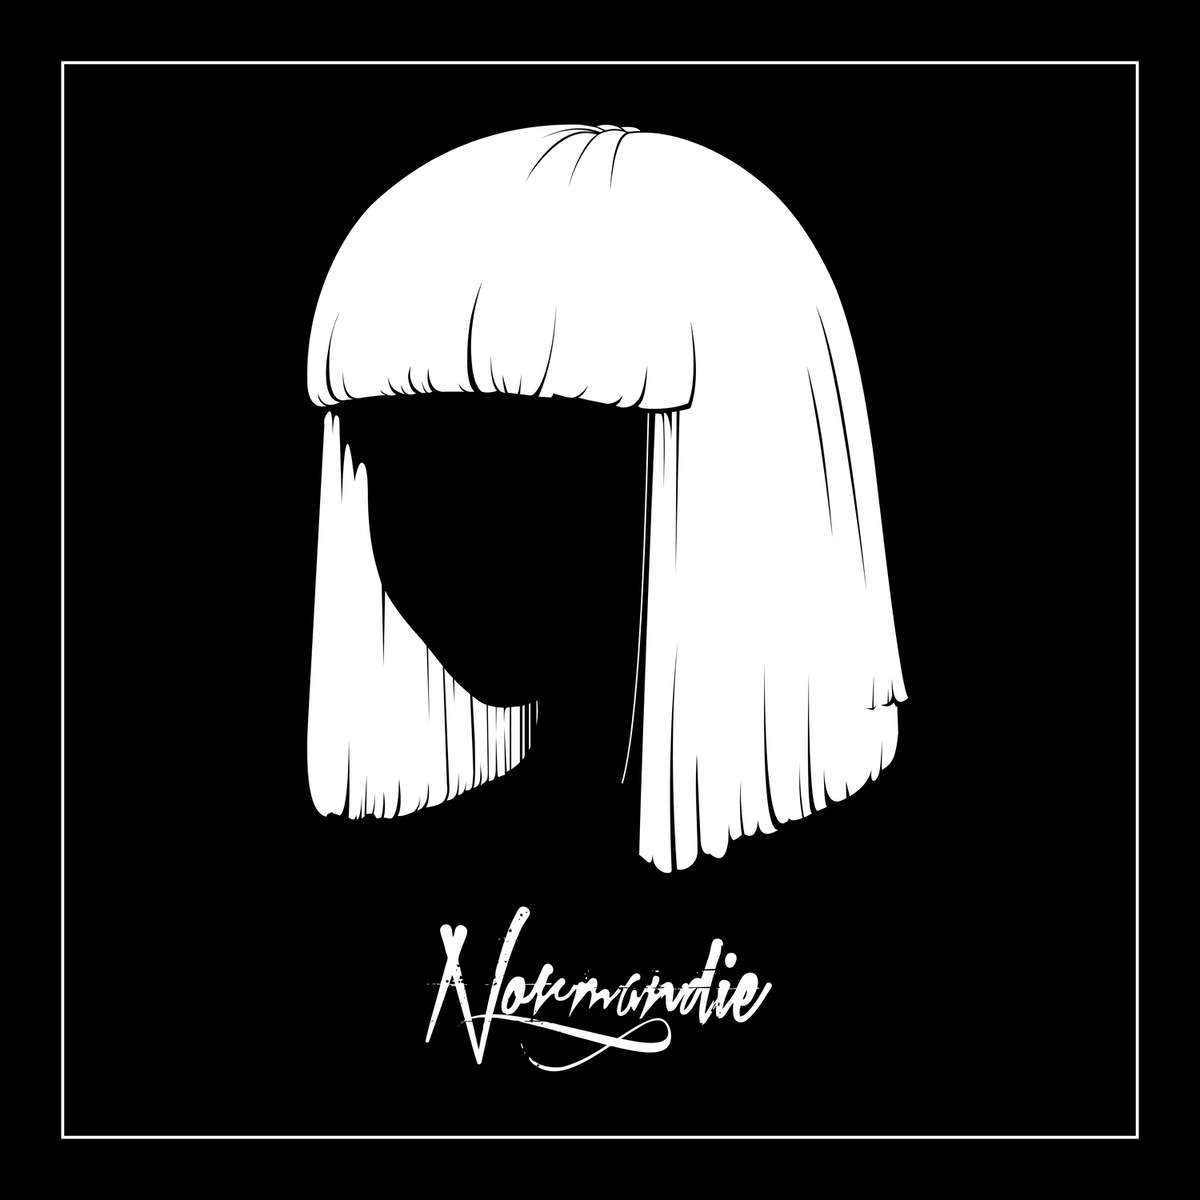 Normandie chandelier sia cover single 2015 for Sia download